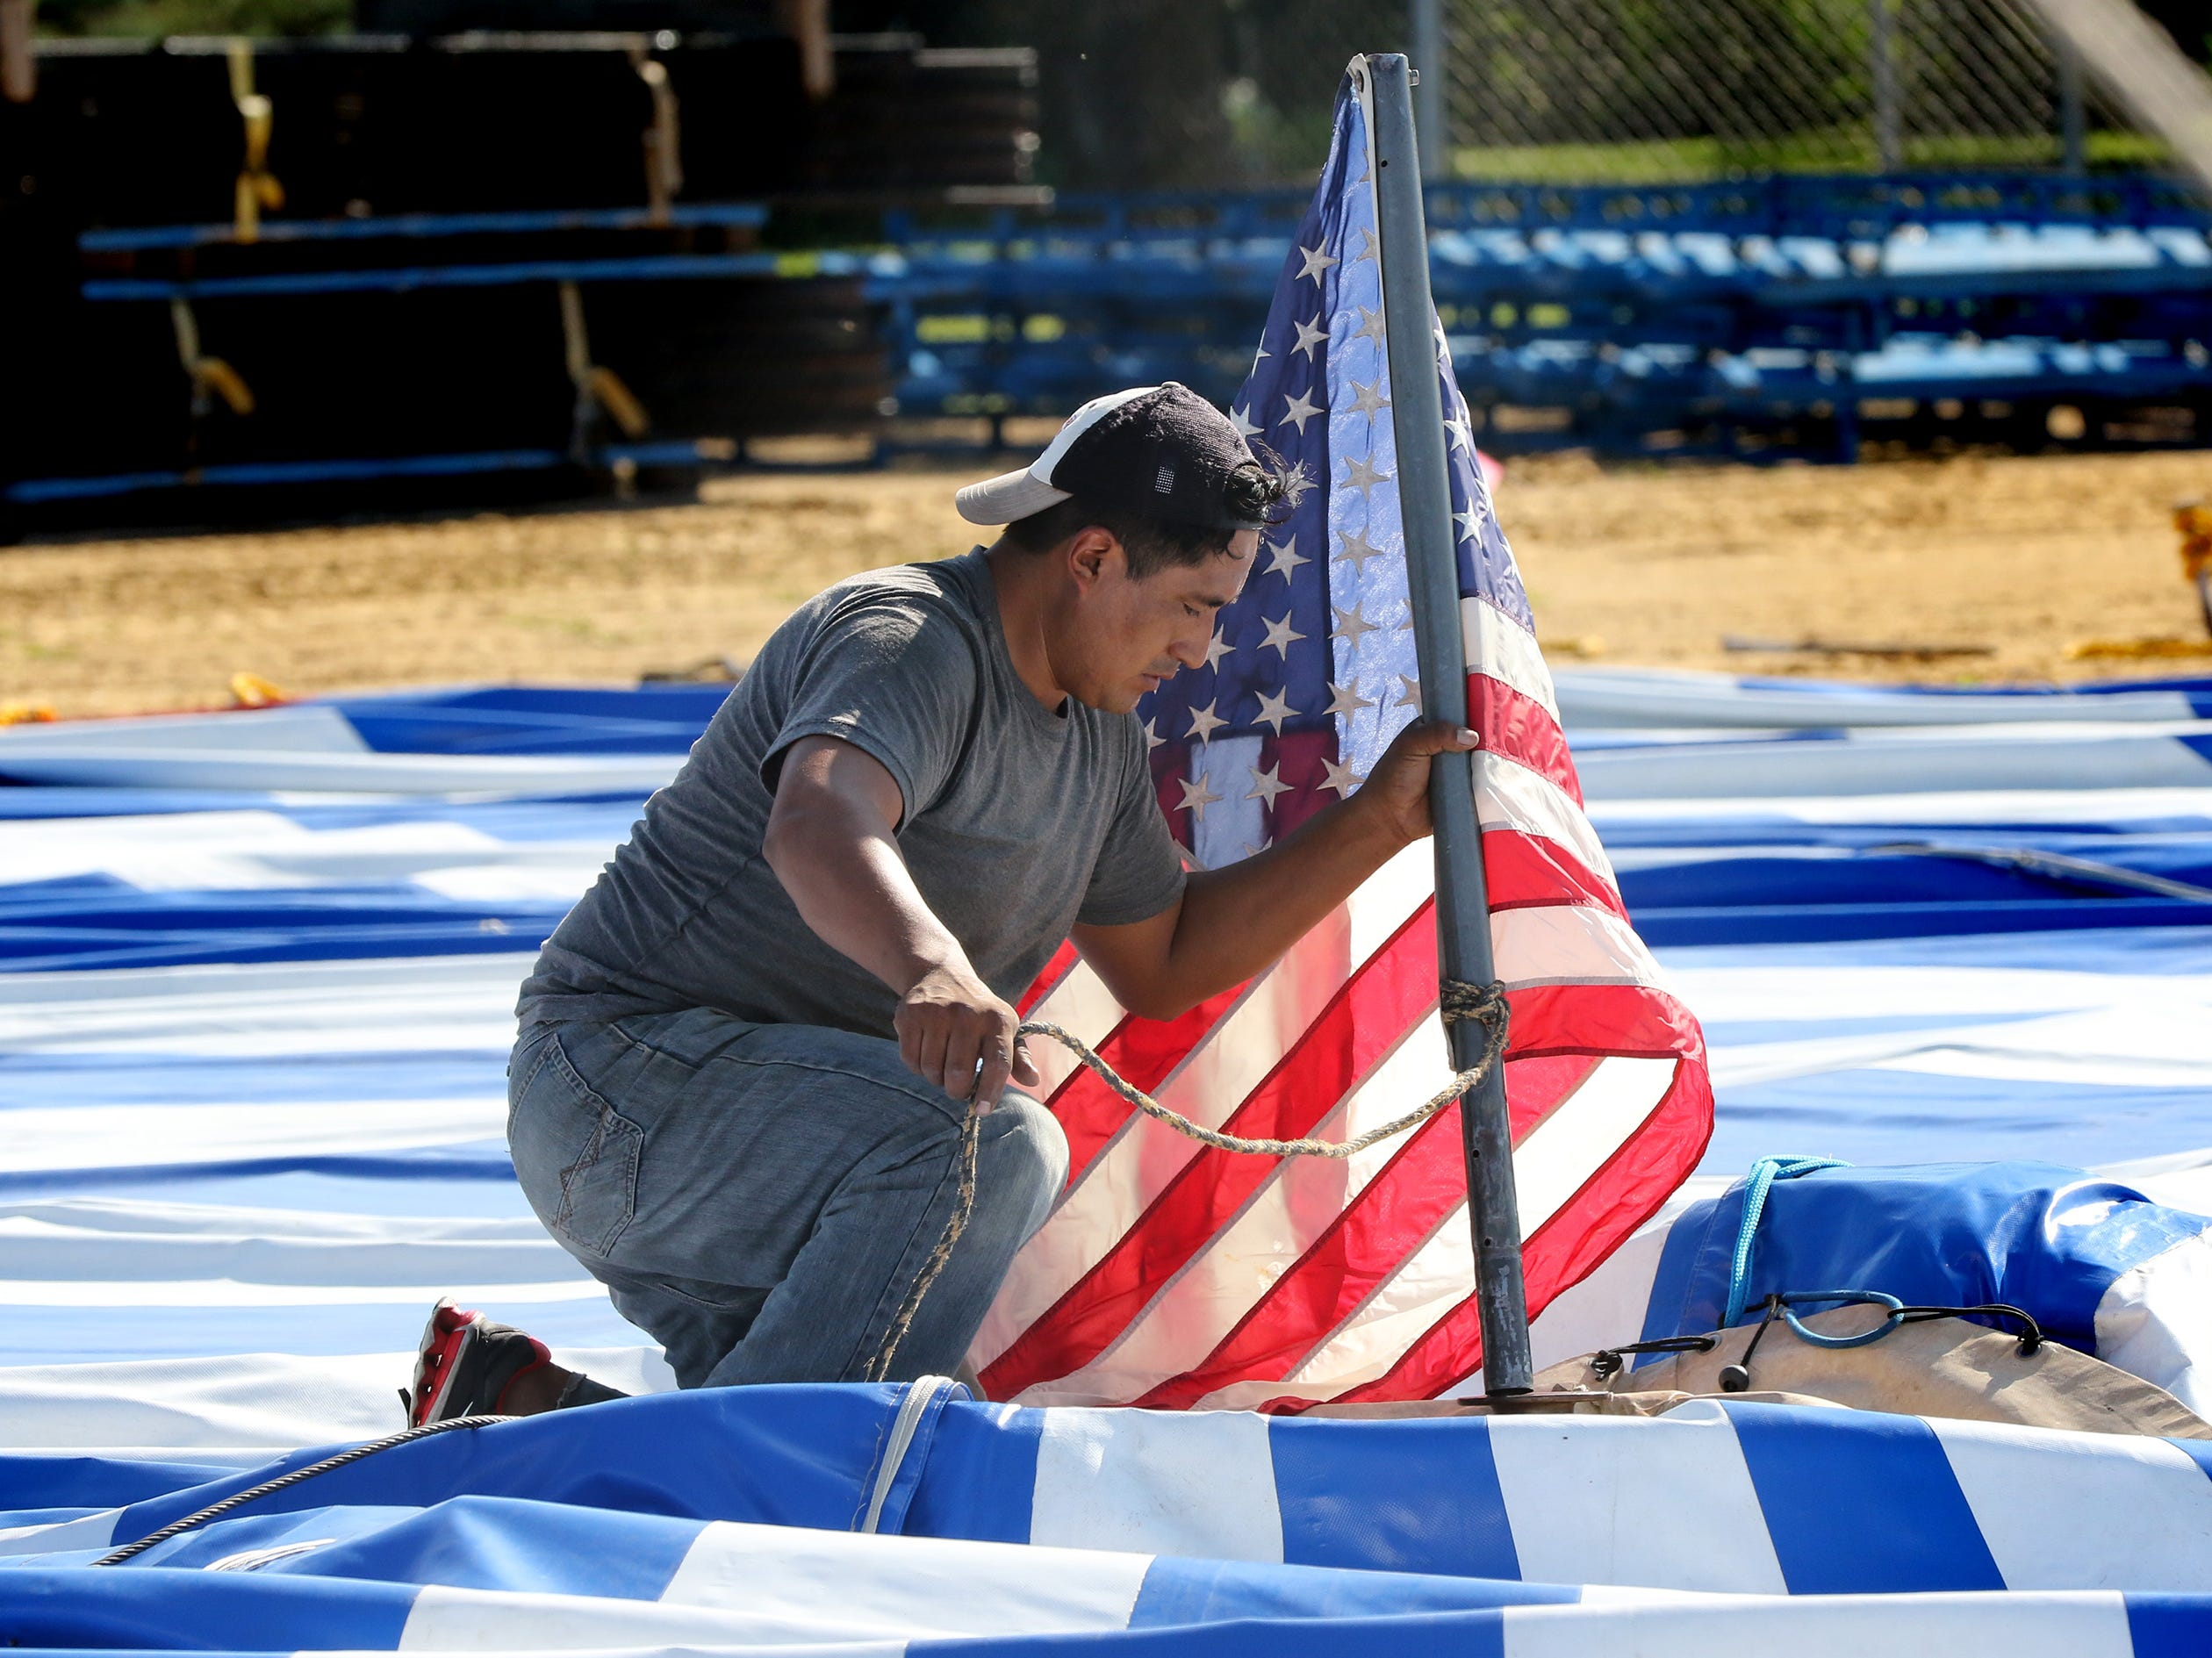 A Culpepper and Merriweather Circus roustabout places a flag that will top one of two main poles for the big top tent. The Circus arrived in Dousman on Aug. 23 for two performances. While setup of the big top takes three hours, it can be taken down and packed onto two trucks in 90 minutes.